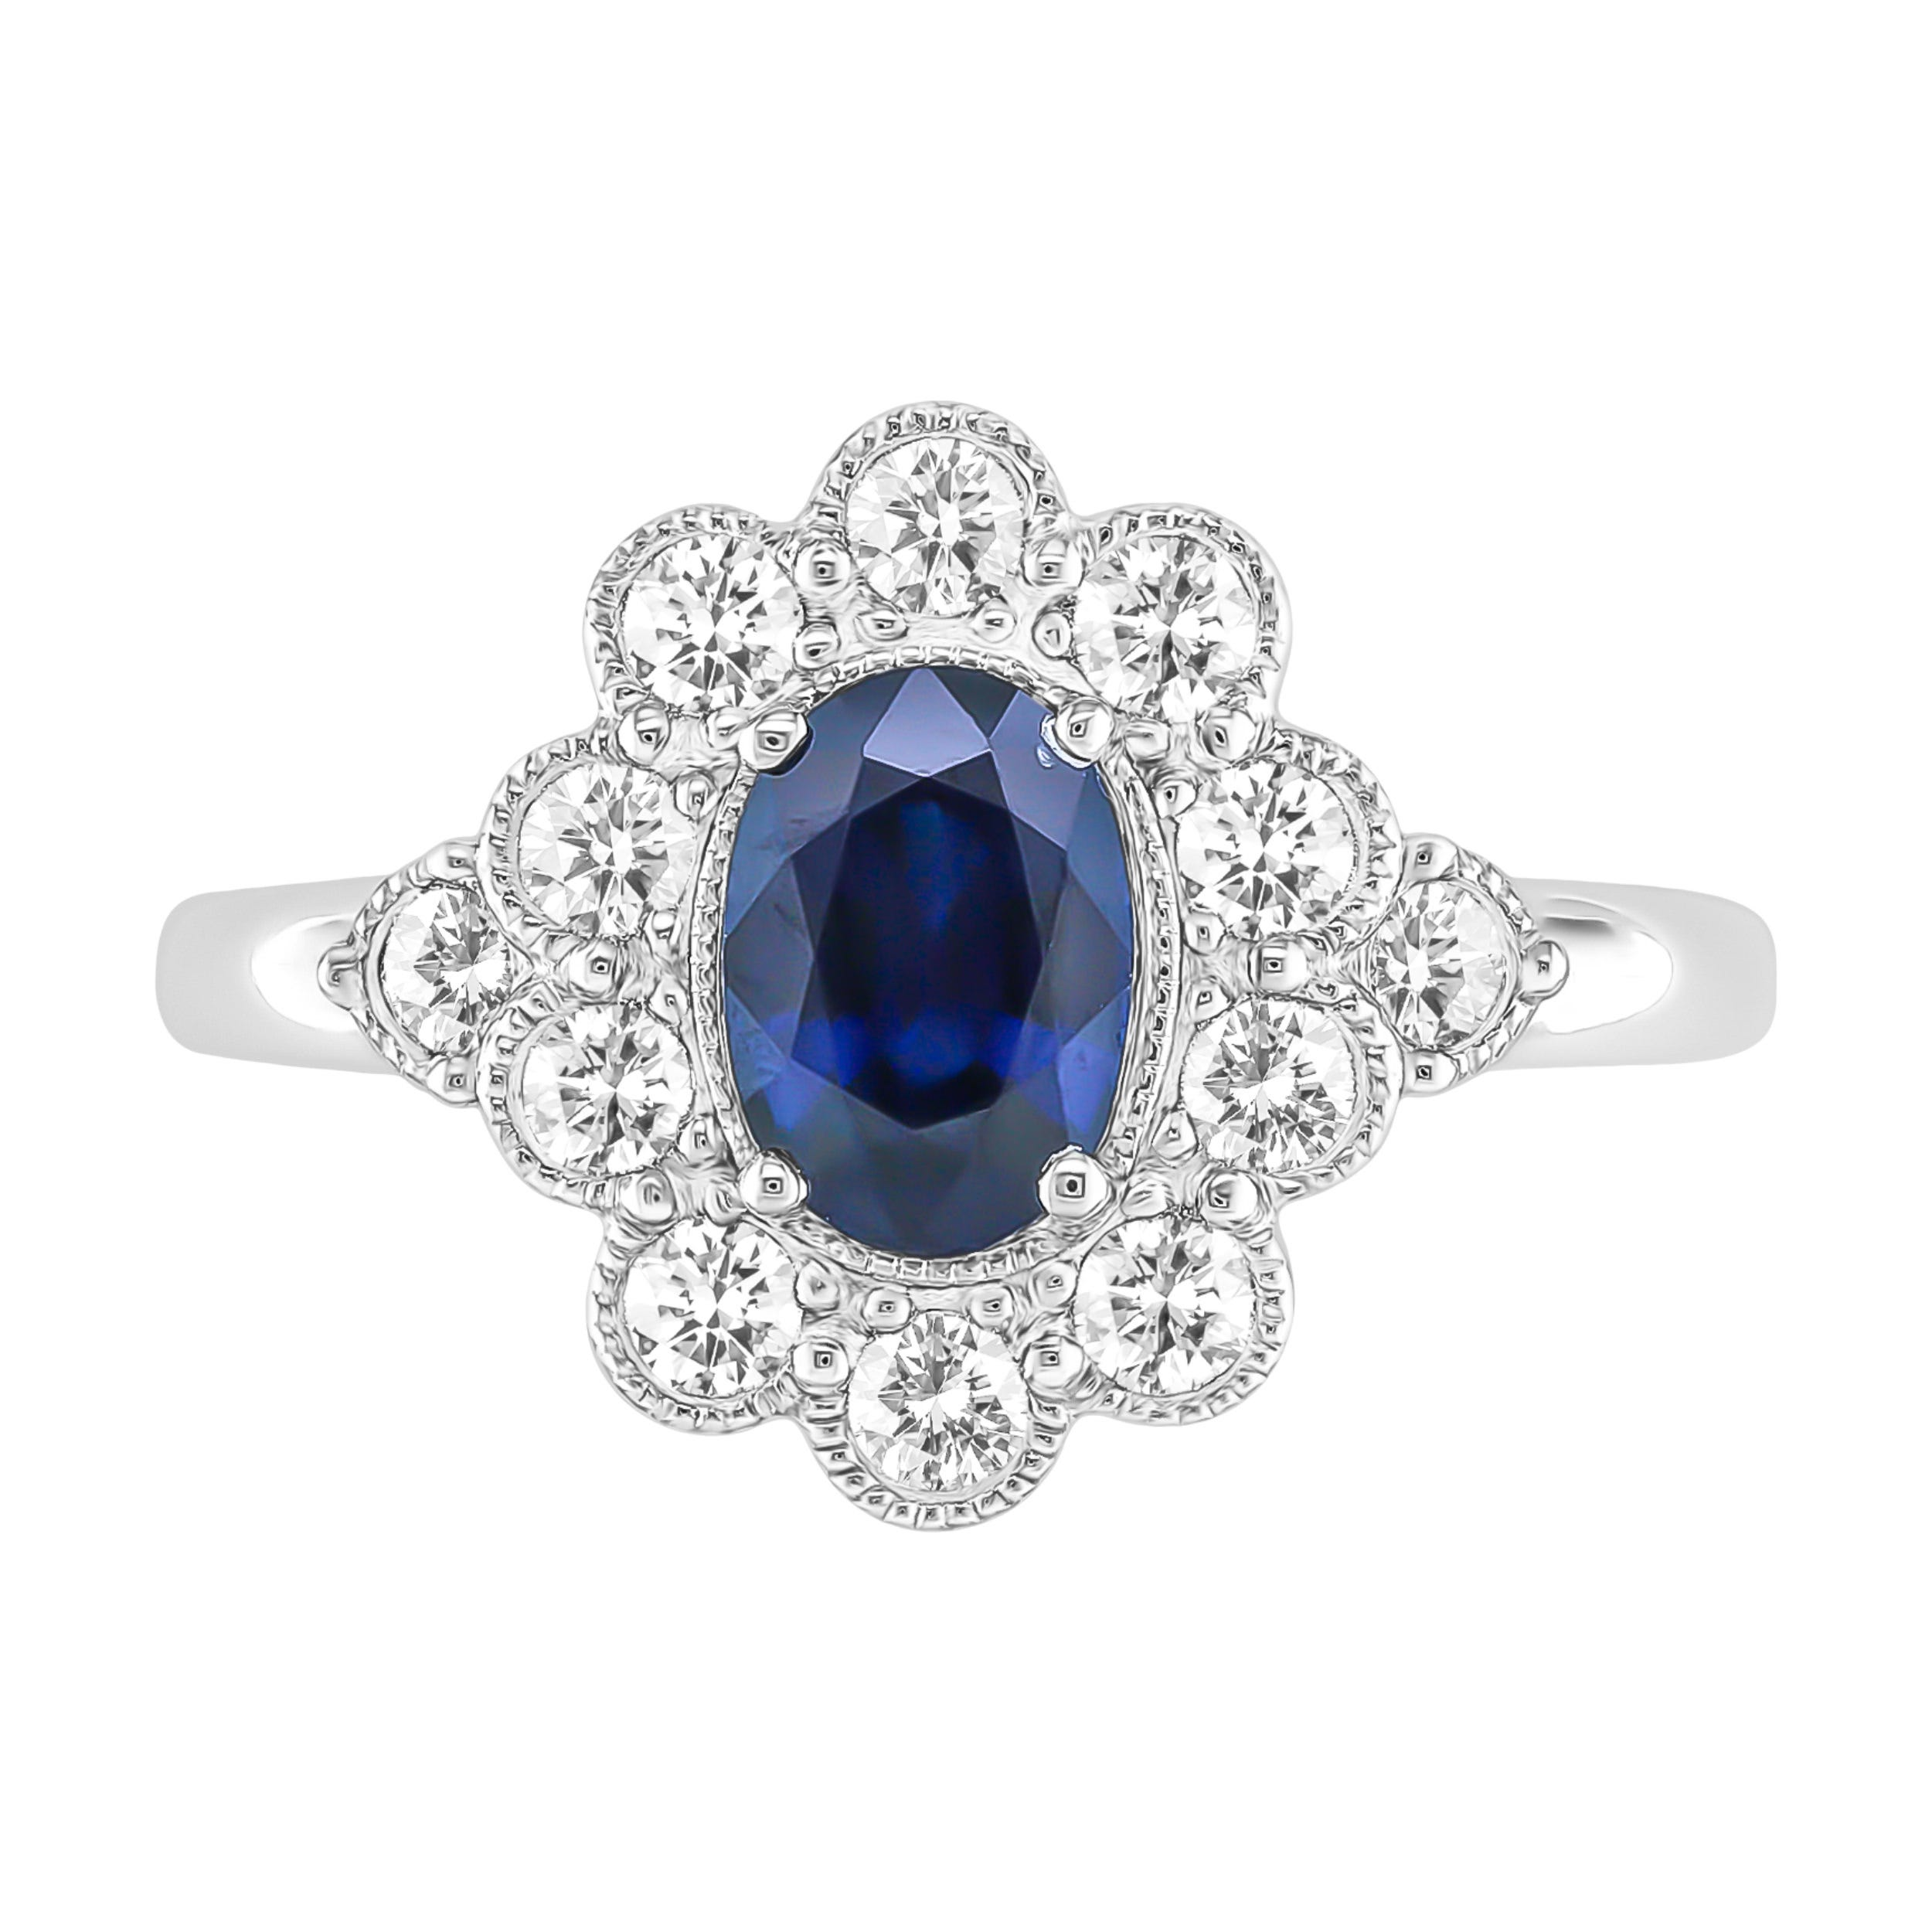 Oval Sapphire & Diamond Halo Ring in 10k White Gold